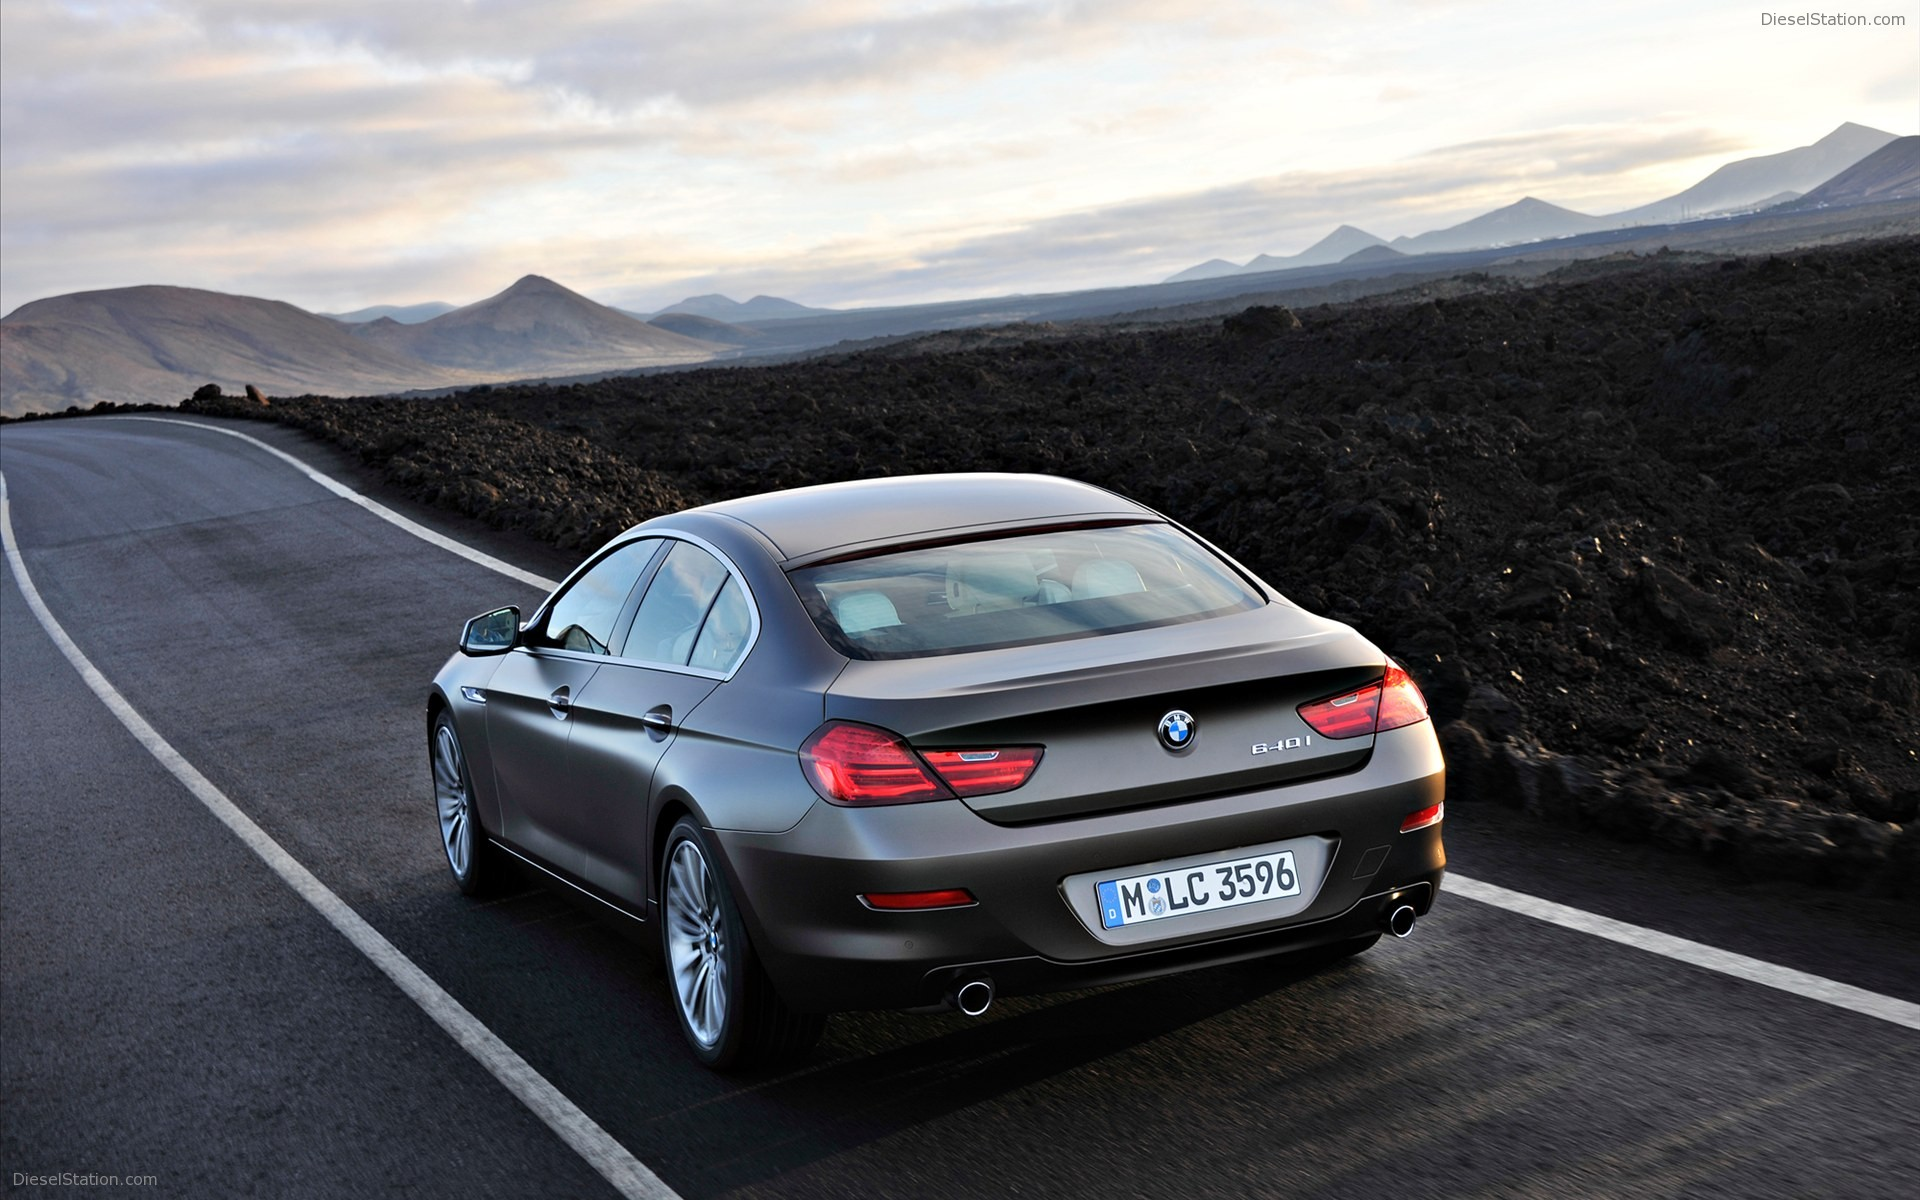 Bmw 6 Series Gran Coupe 2013 Widescreen Exotic Car ...